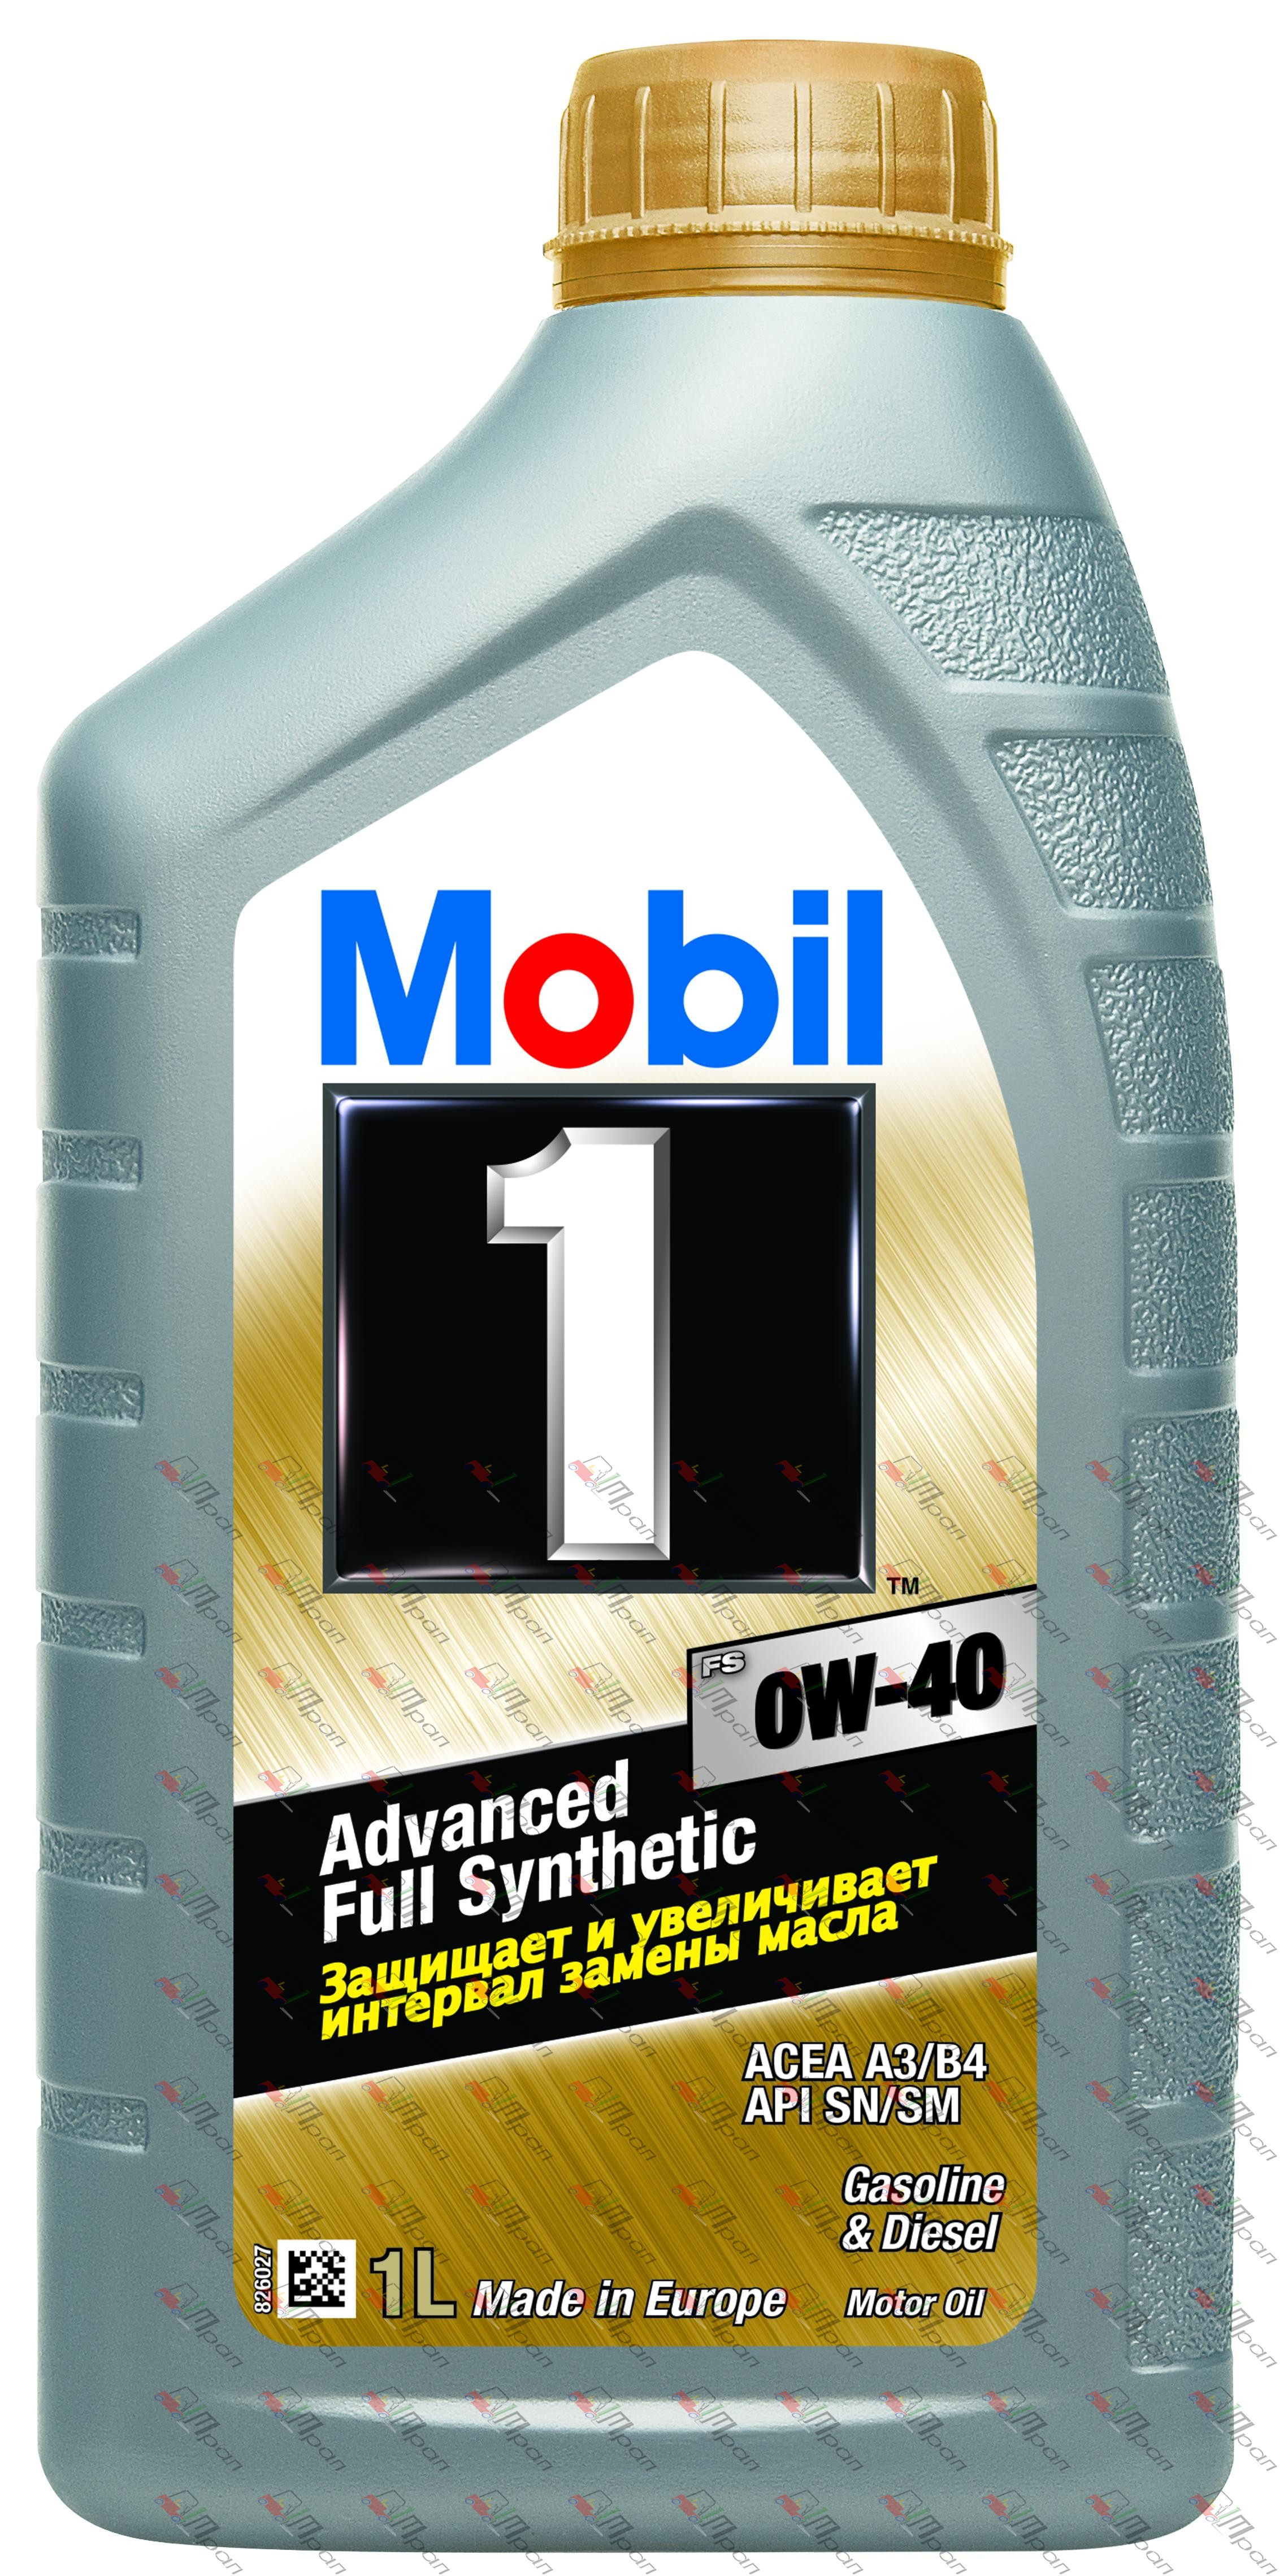 Mobil Масло моторное синтетич. Mobil 1 FS 0w40 1л